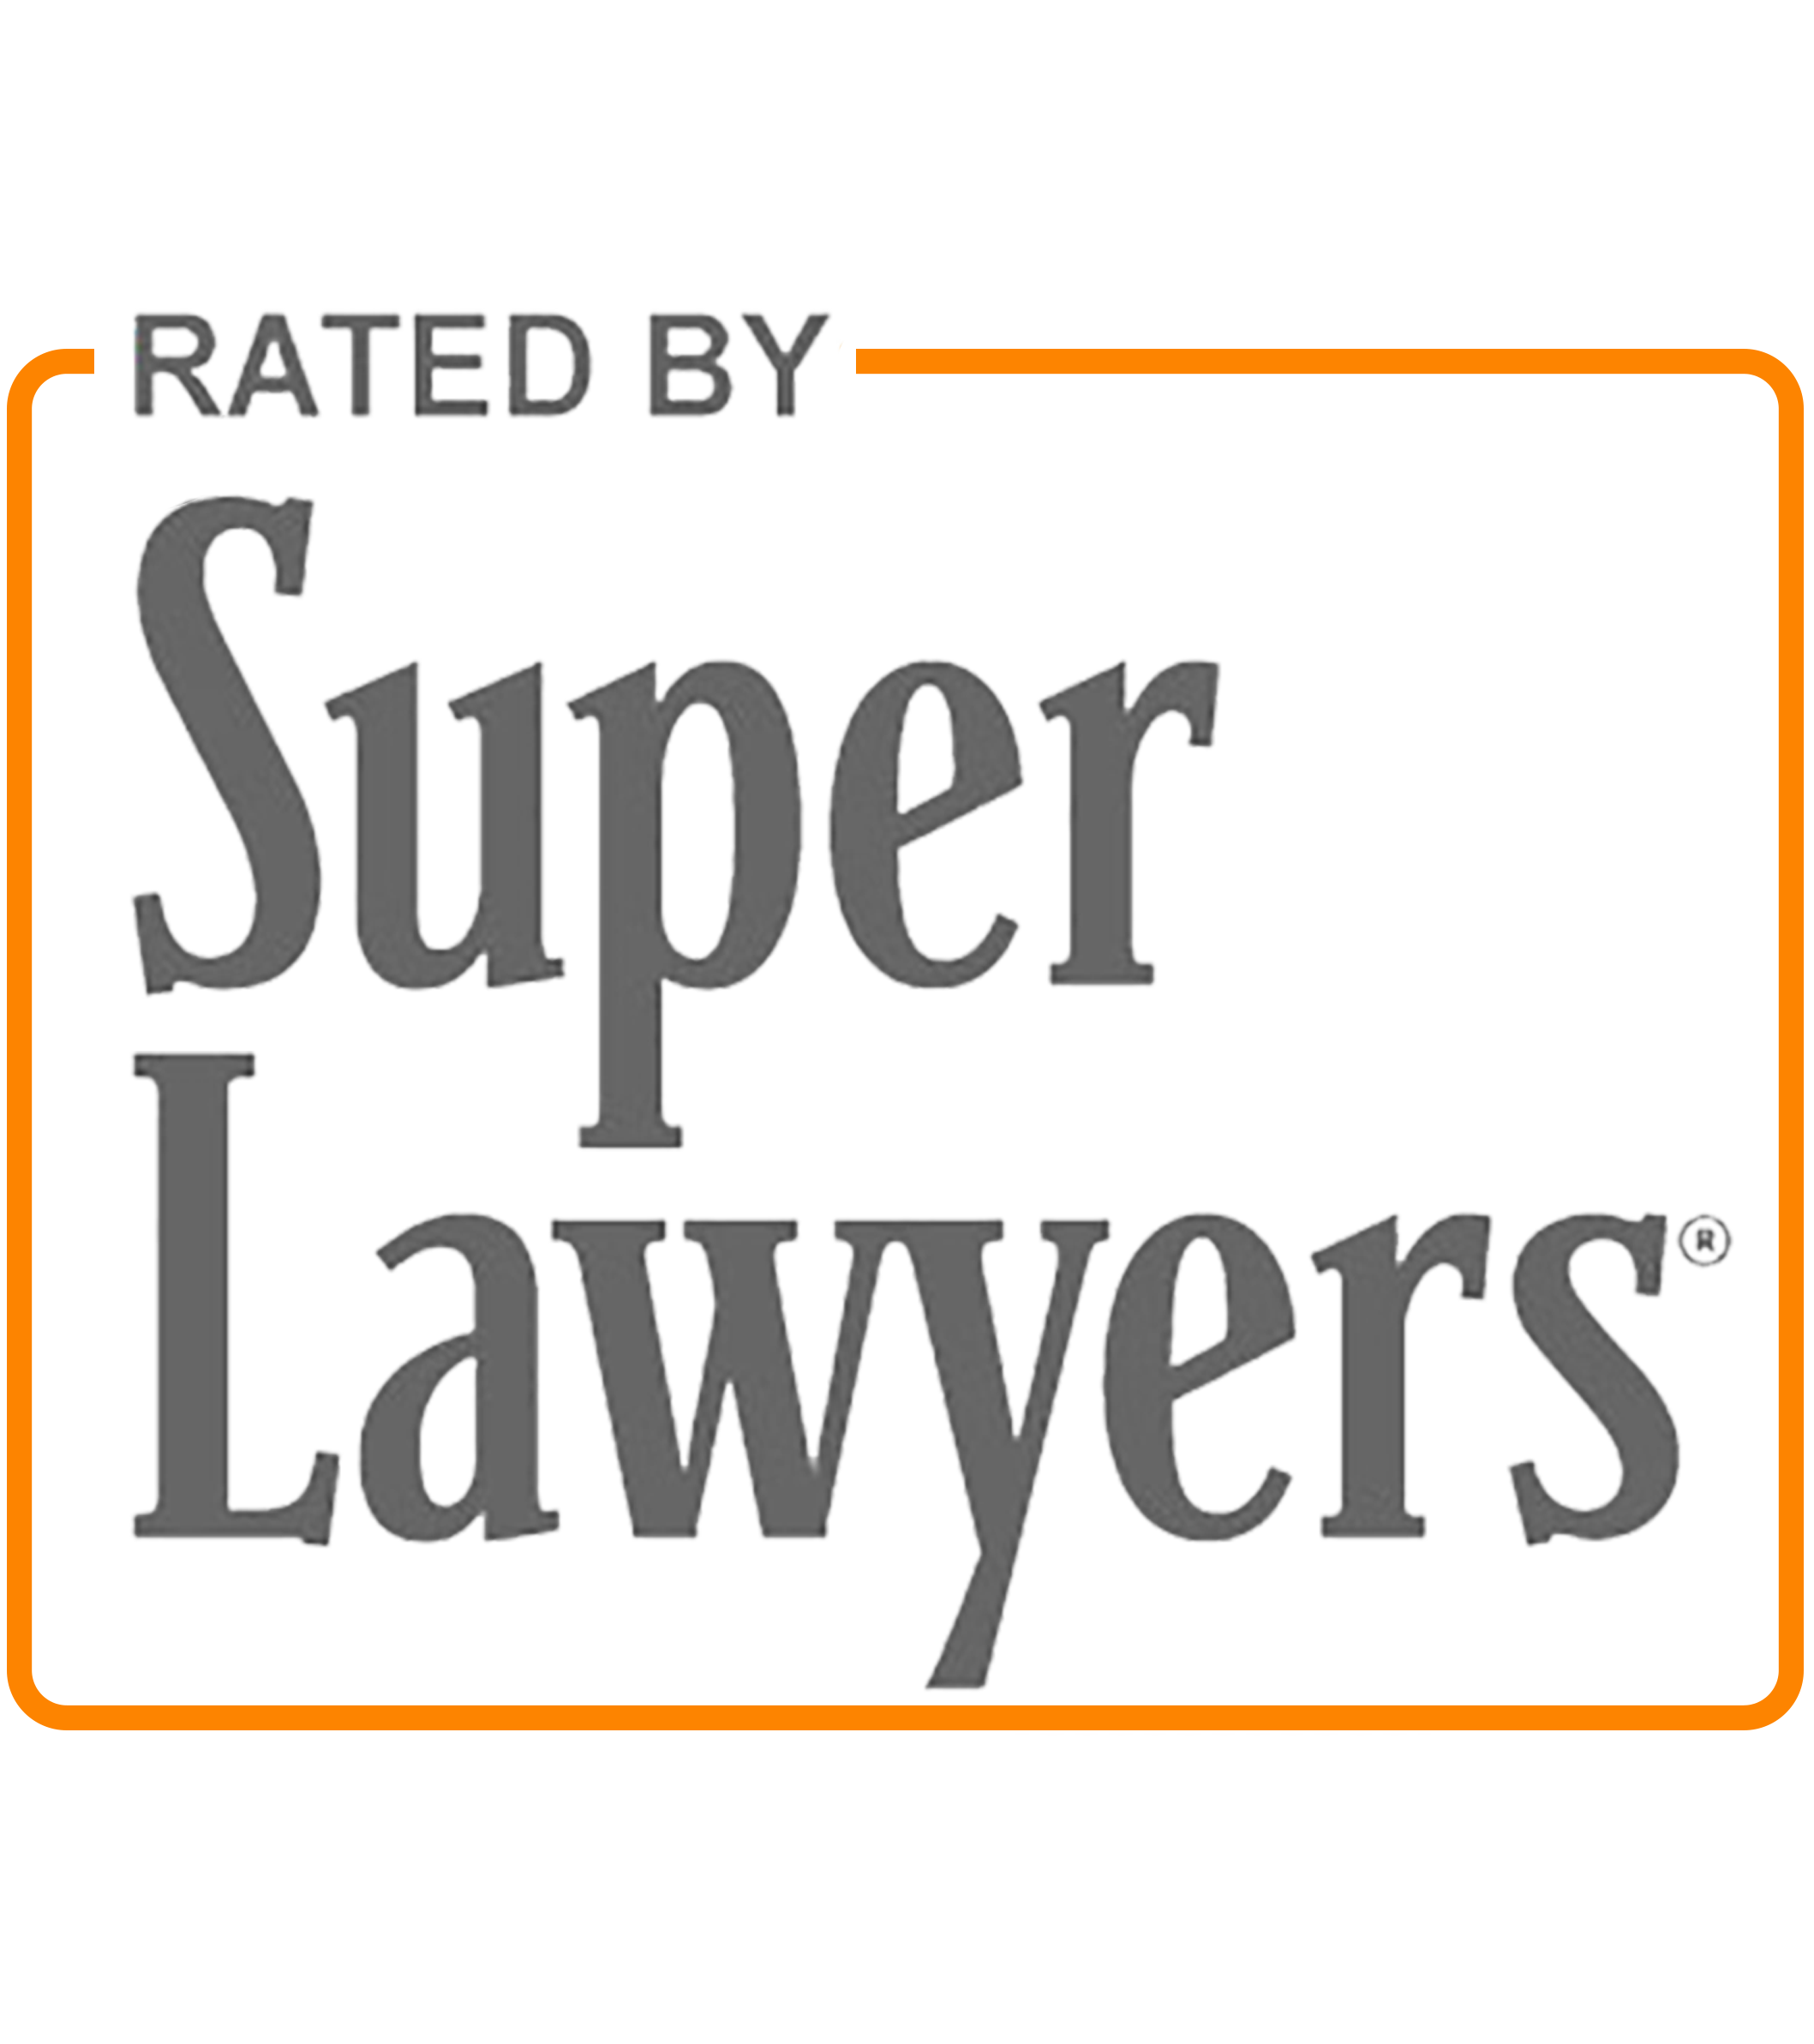 Douglas R. Beam is a Melbourne, Florida personal injury attorney that is rated as a Super Lawyer